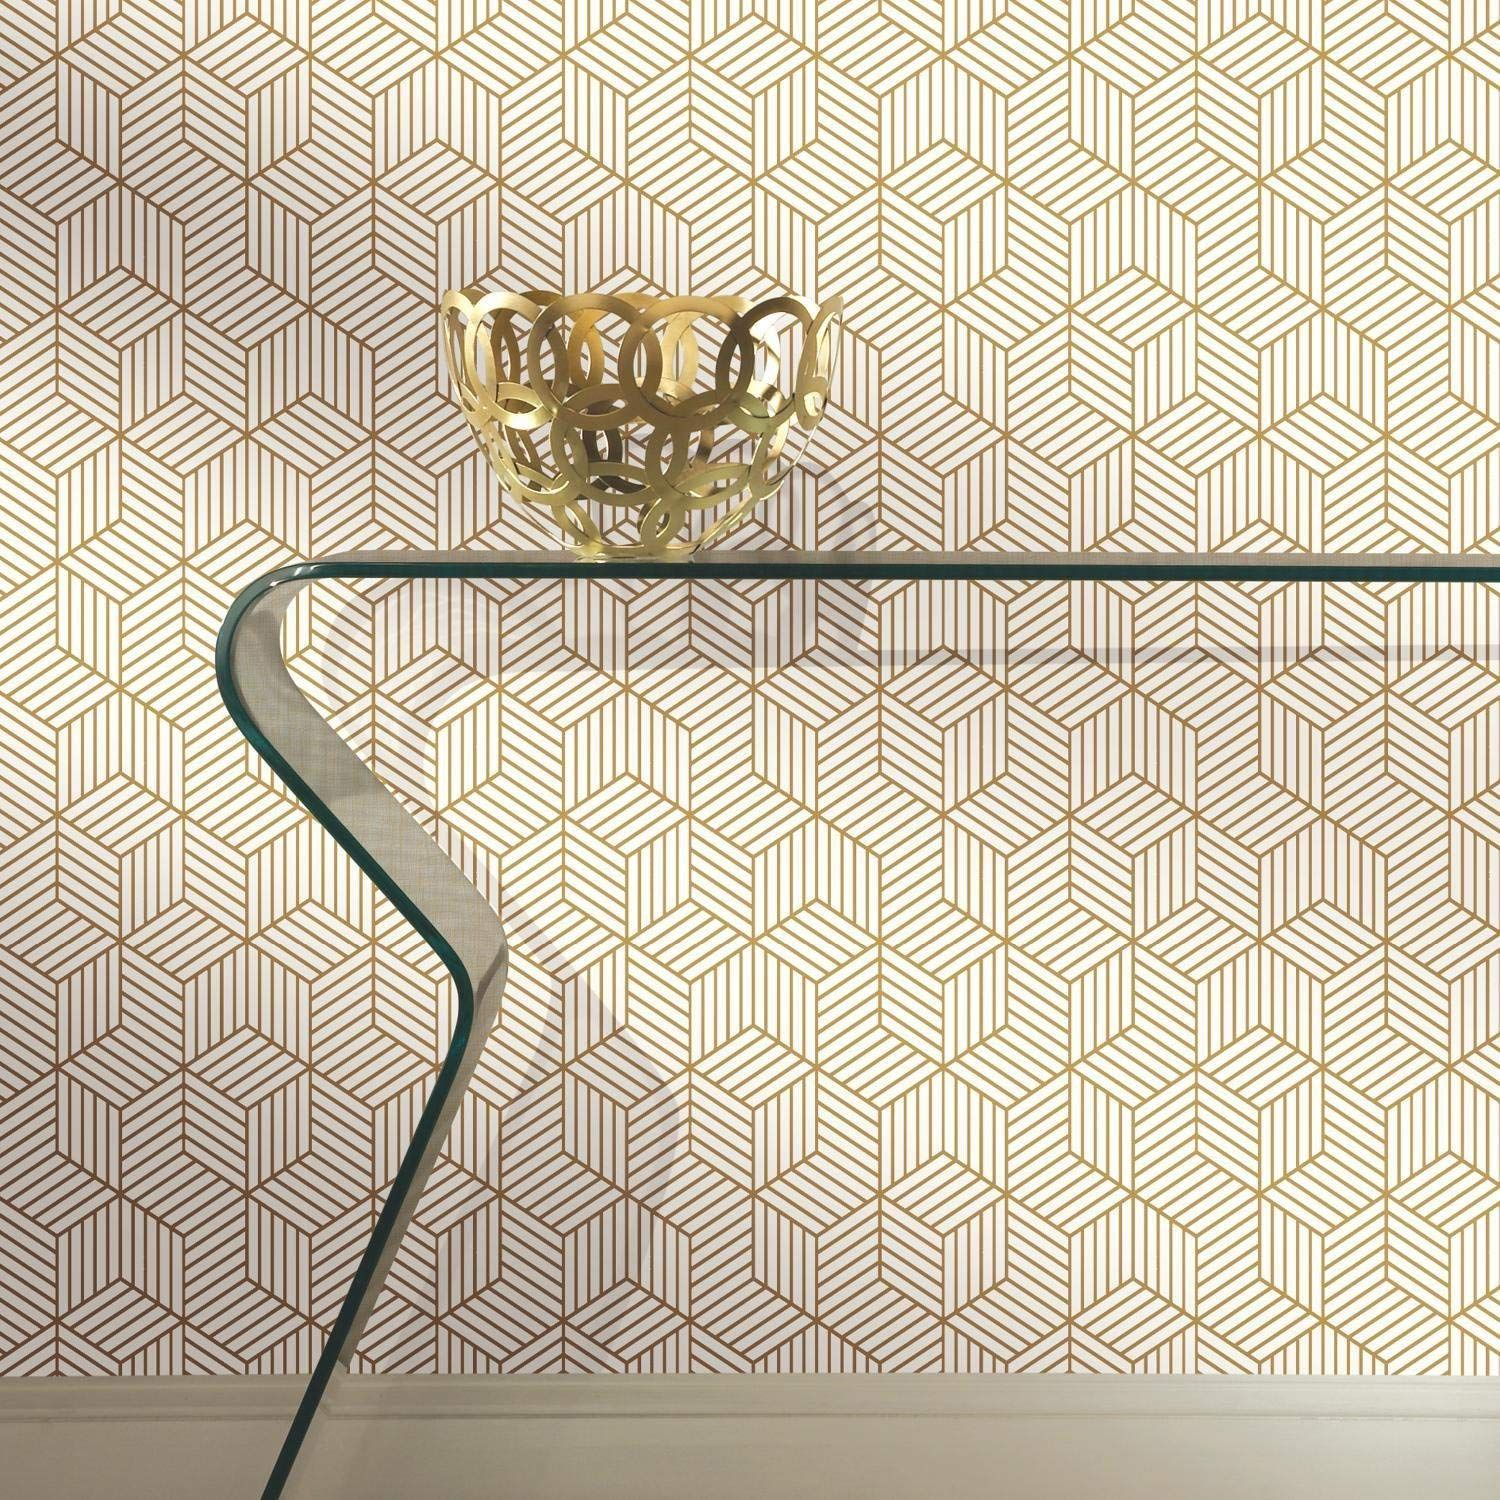 Stripped Hexagon Repositionable And Removable Peel And Stick Wallpaper Amazon Com Mid Century Modern Wallpaper Peel And Stick Wallpaper Modern Wallpaper